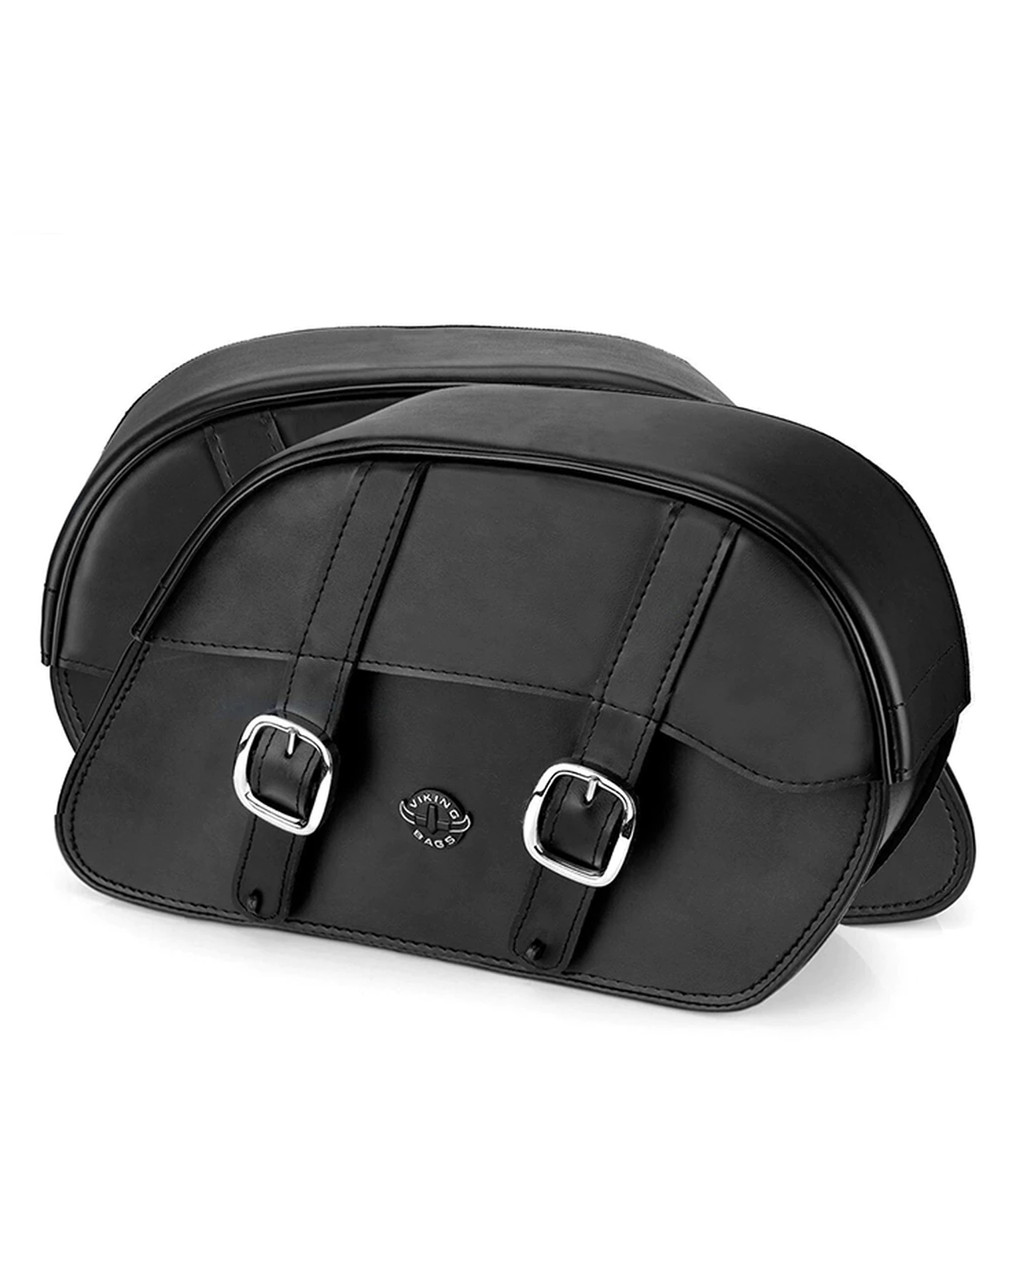 Viking Medium Slanted Motorcycle Saddlebags For Harley Dyna Low Rider FXDL Both Bags View